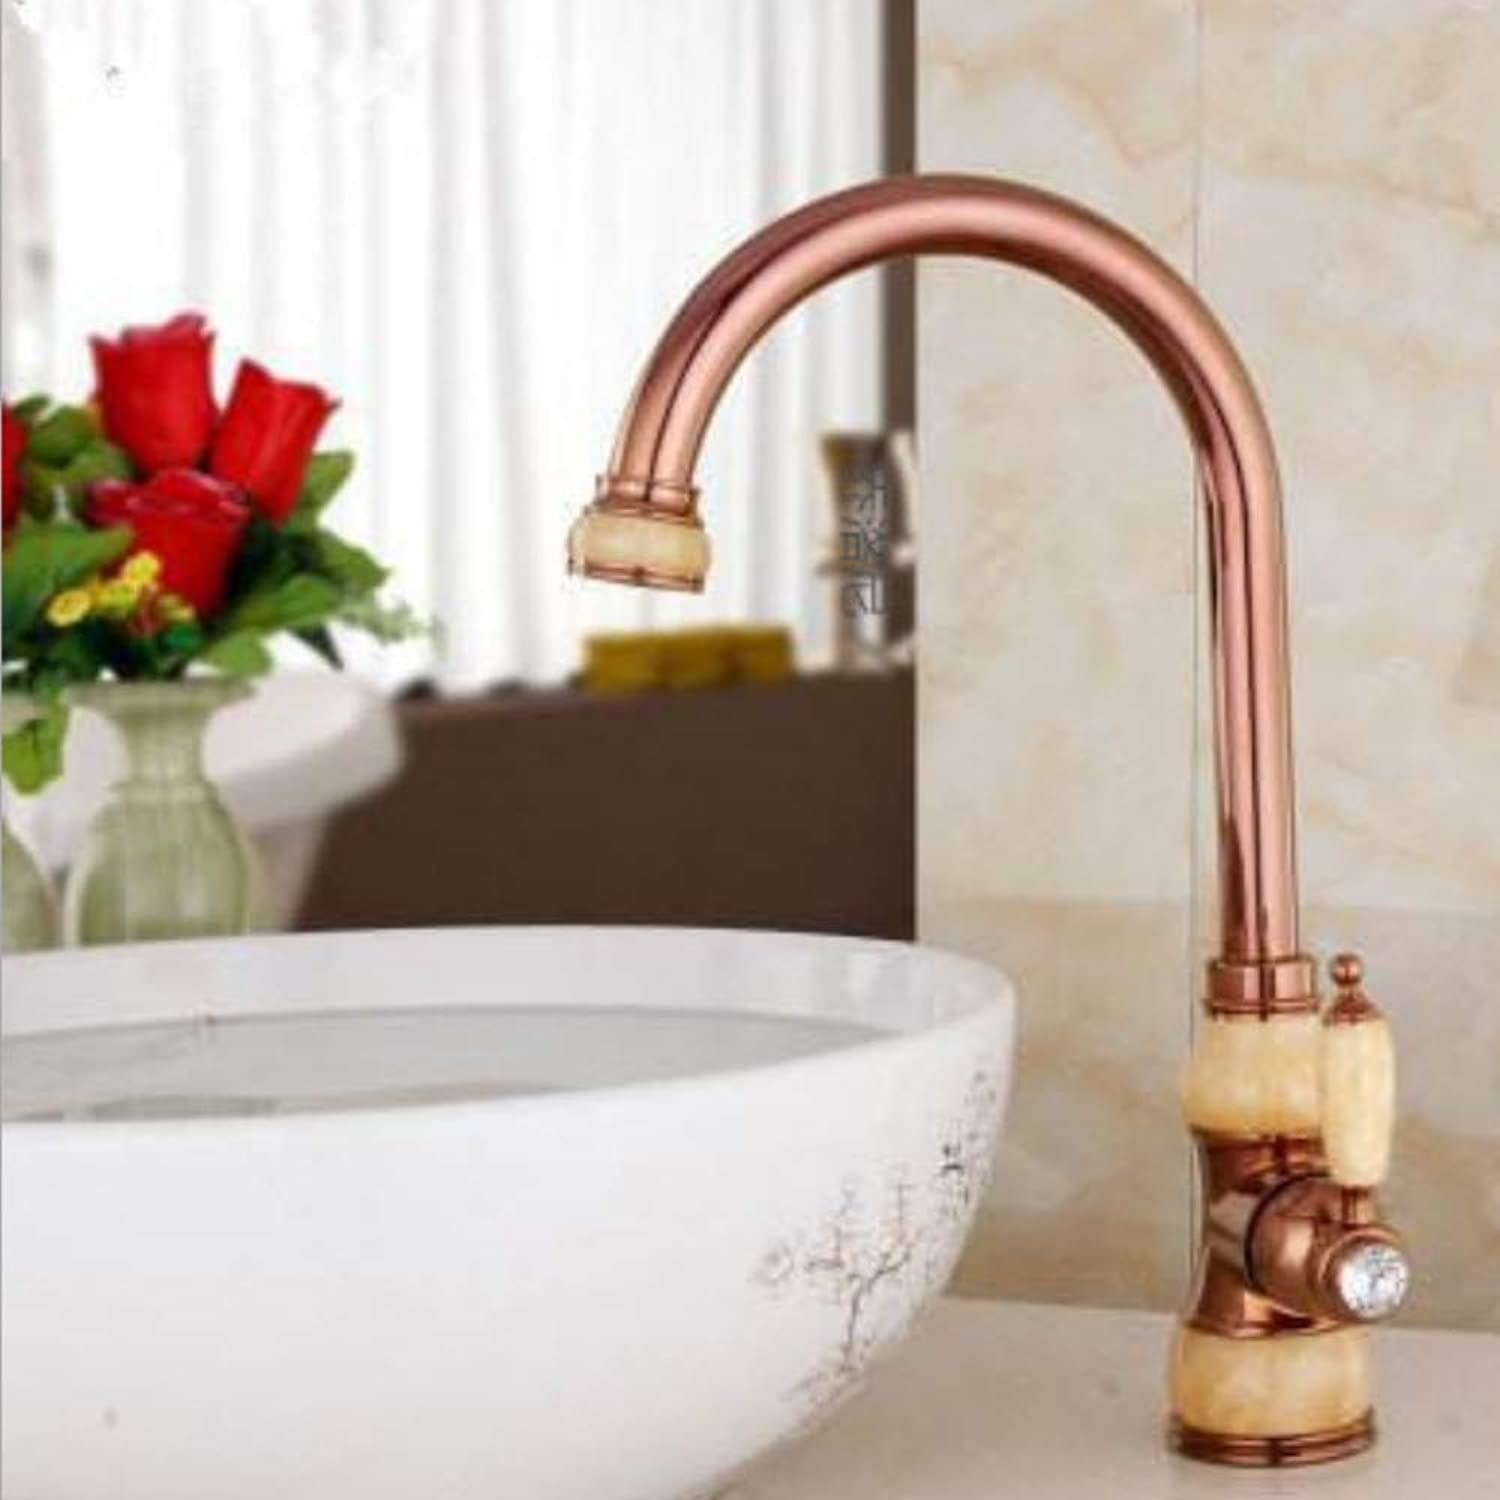 Lddpl European Jade and gold Kitchen Faucet hot and Cold Vegetables Basin redating taps All Copper Antique Basin Faucet Water tap